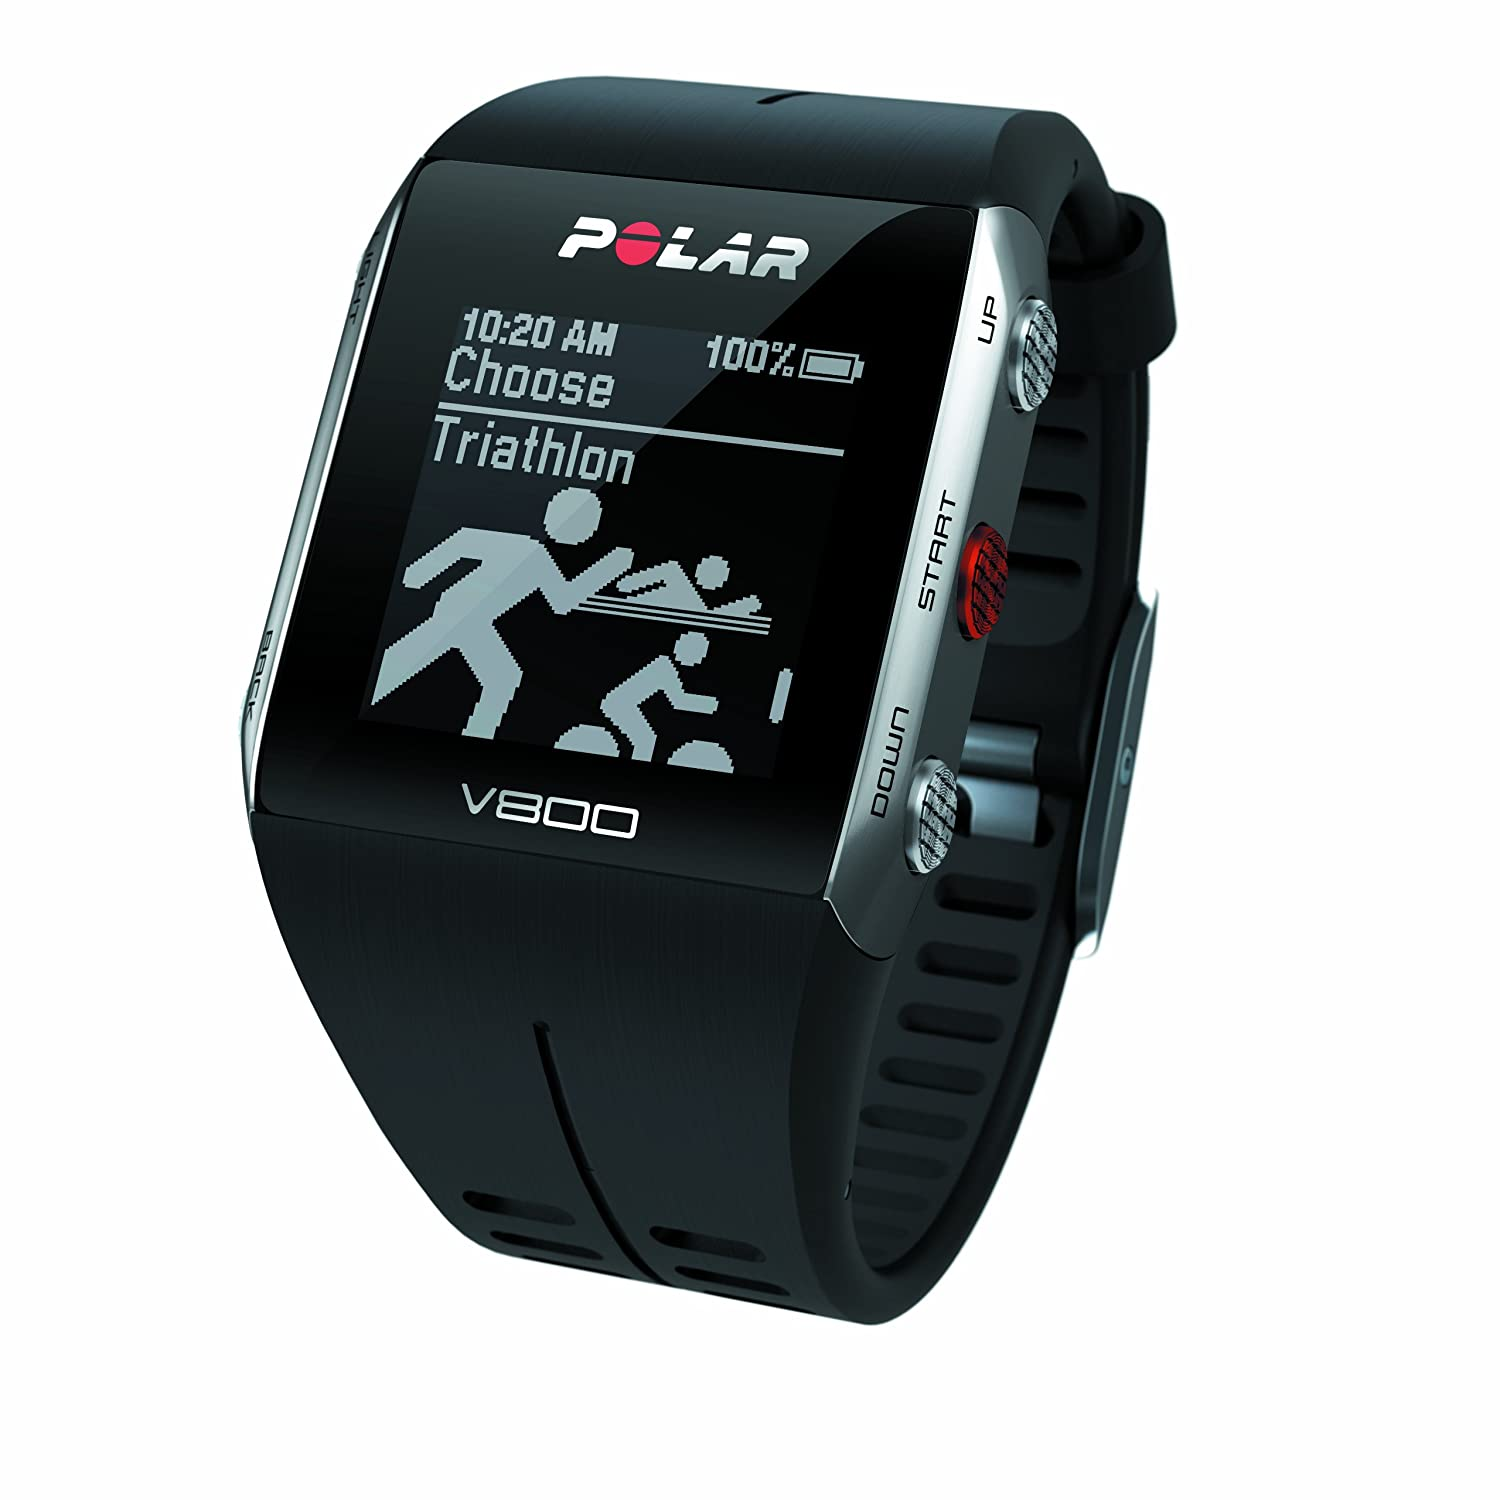 Amazon.com : Polar V800 Multisport Integrated Fitness Watch with Heart Rate Monitor & GPS - Black : Sports & Outdoors